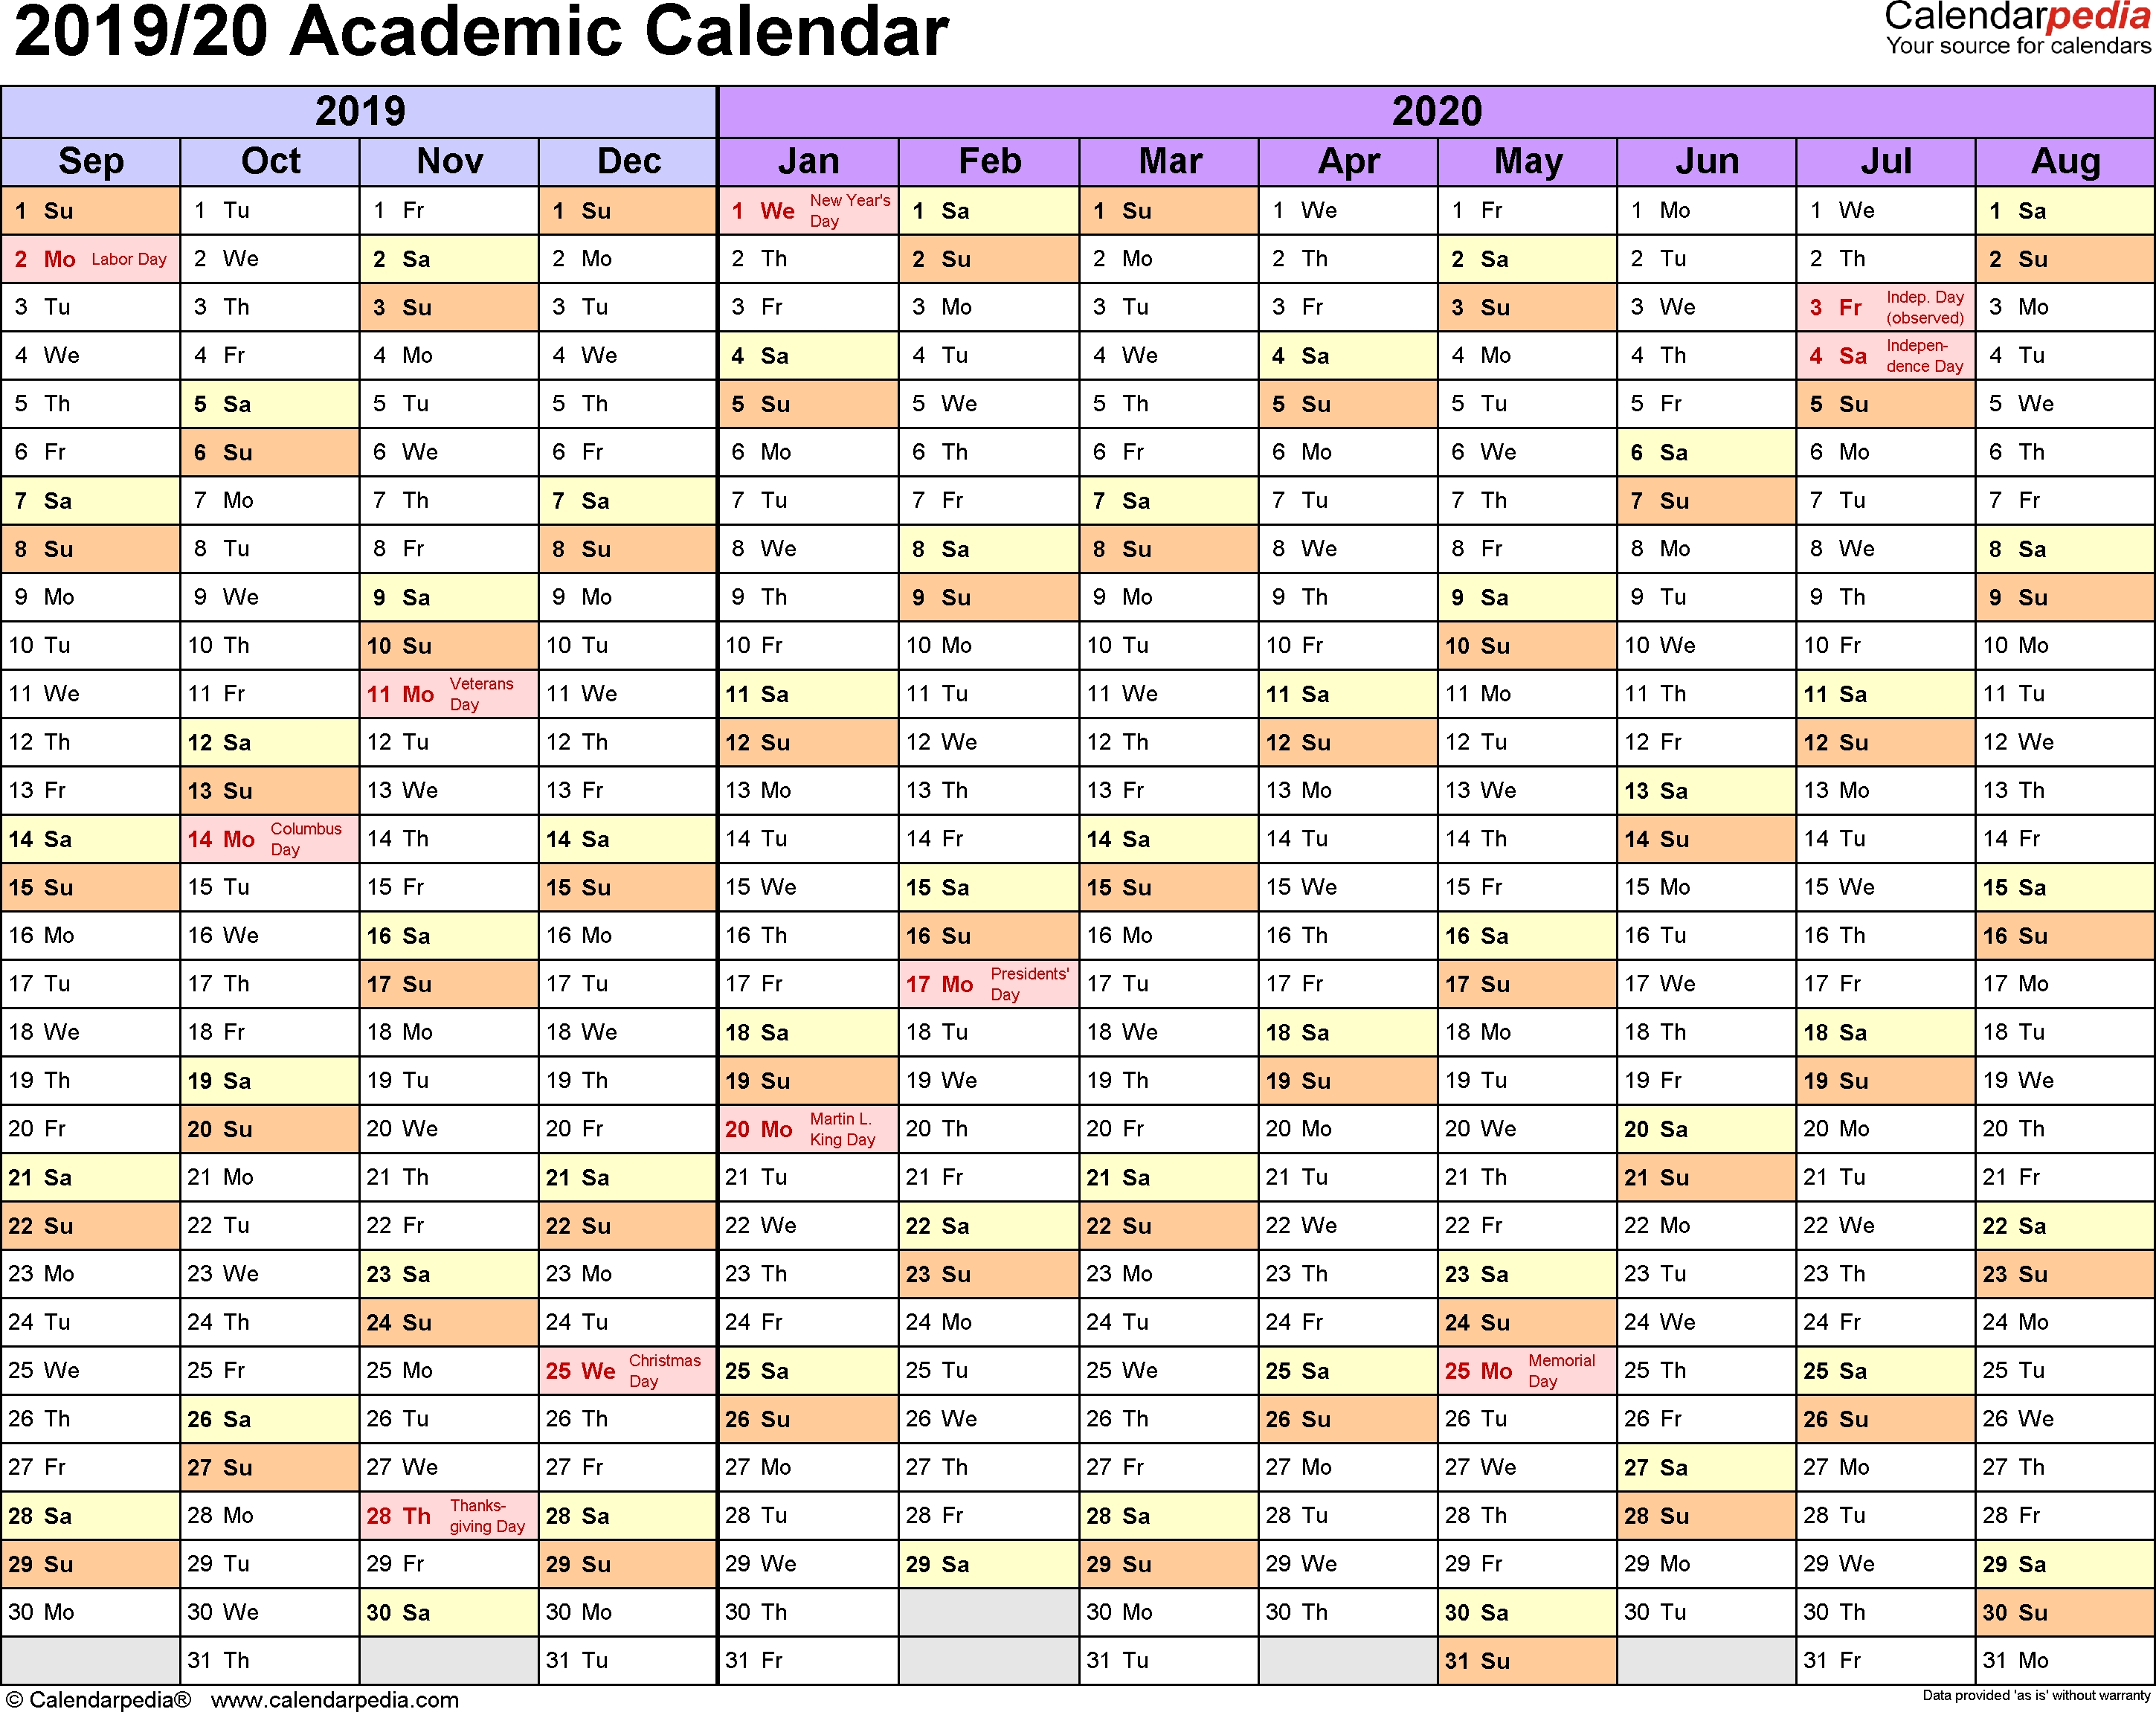 Academic Calendars 2019/2020 - Free Printable Pdf Templates with regard to A4 Yearly Calendars For 2019 And 2020